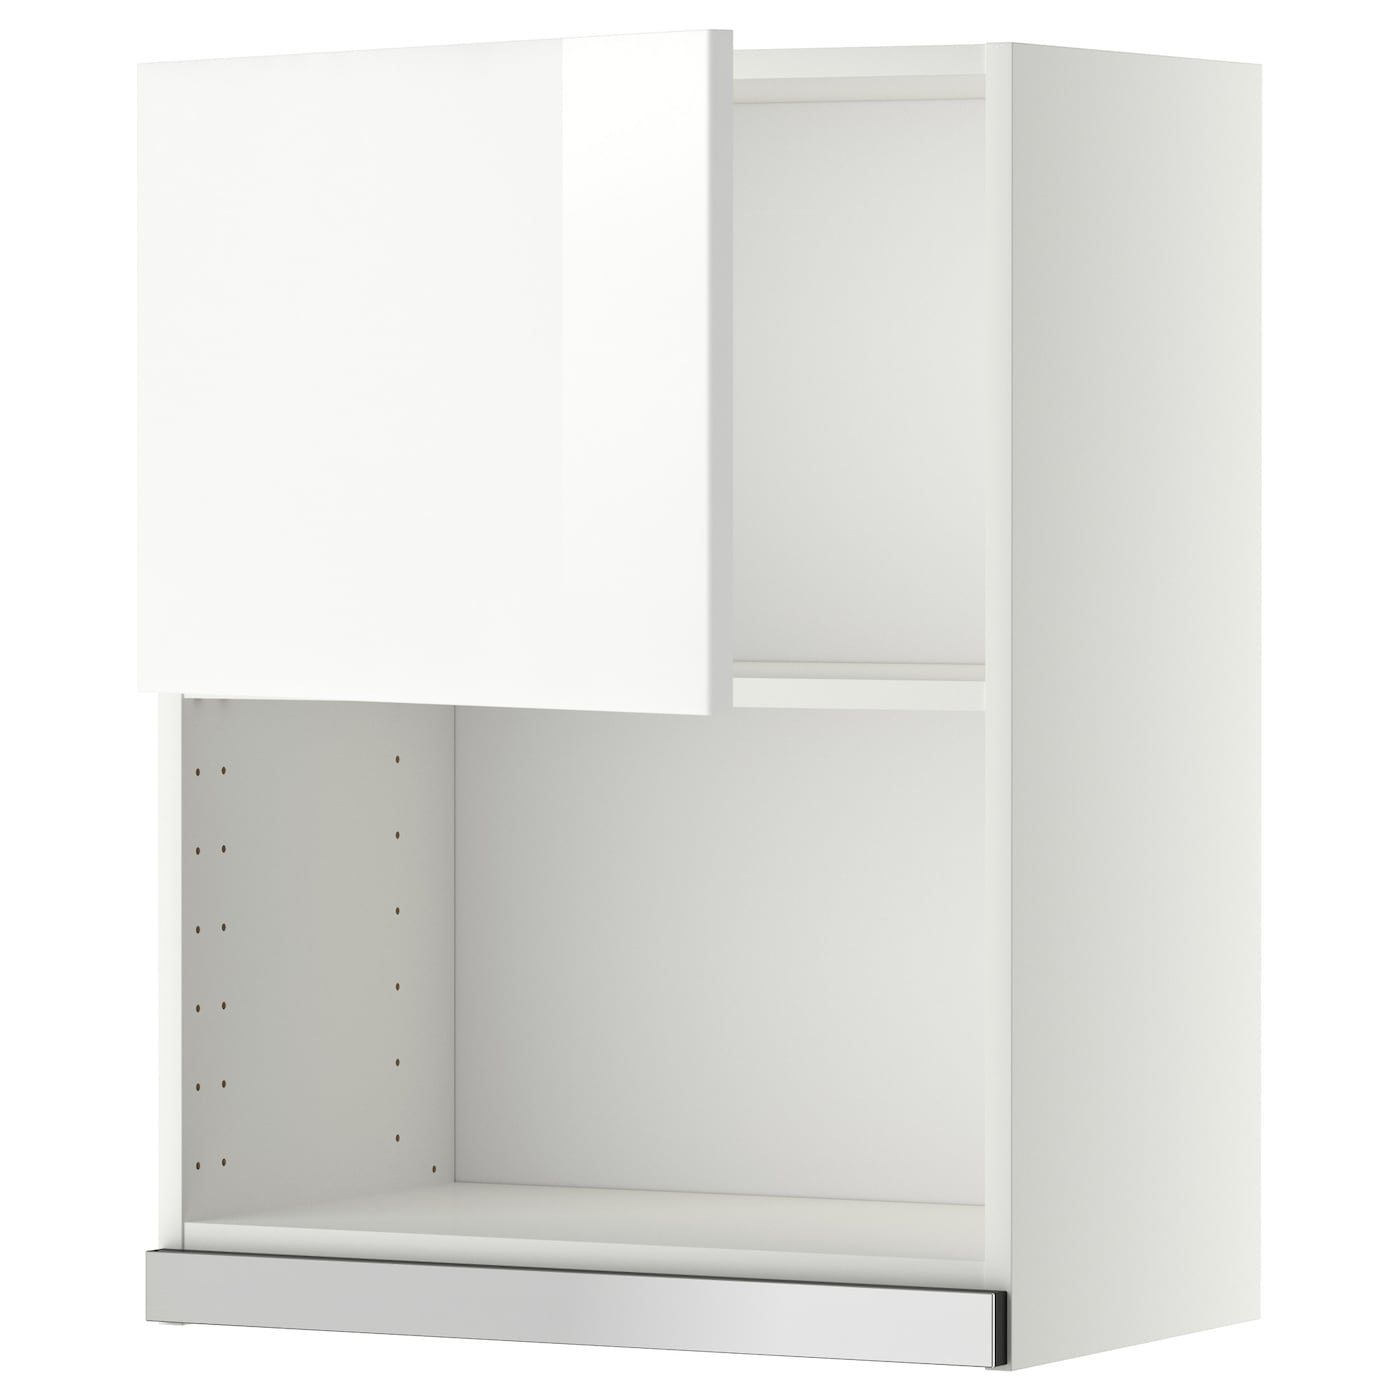 Metod wall cabinet for microwave oven white ringhult white - Ikea mueble de cocina ...